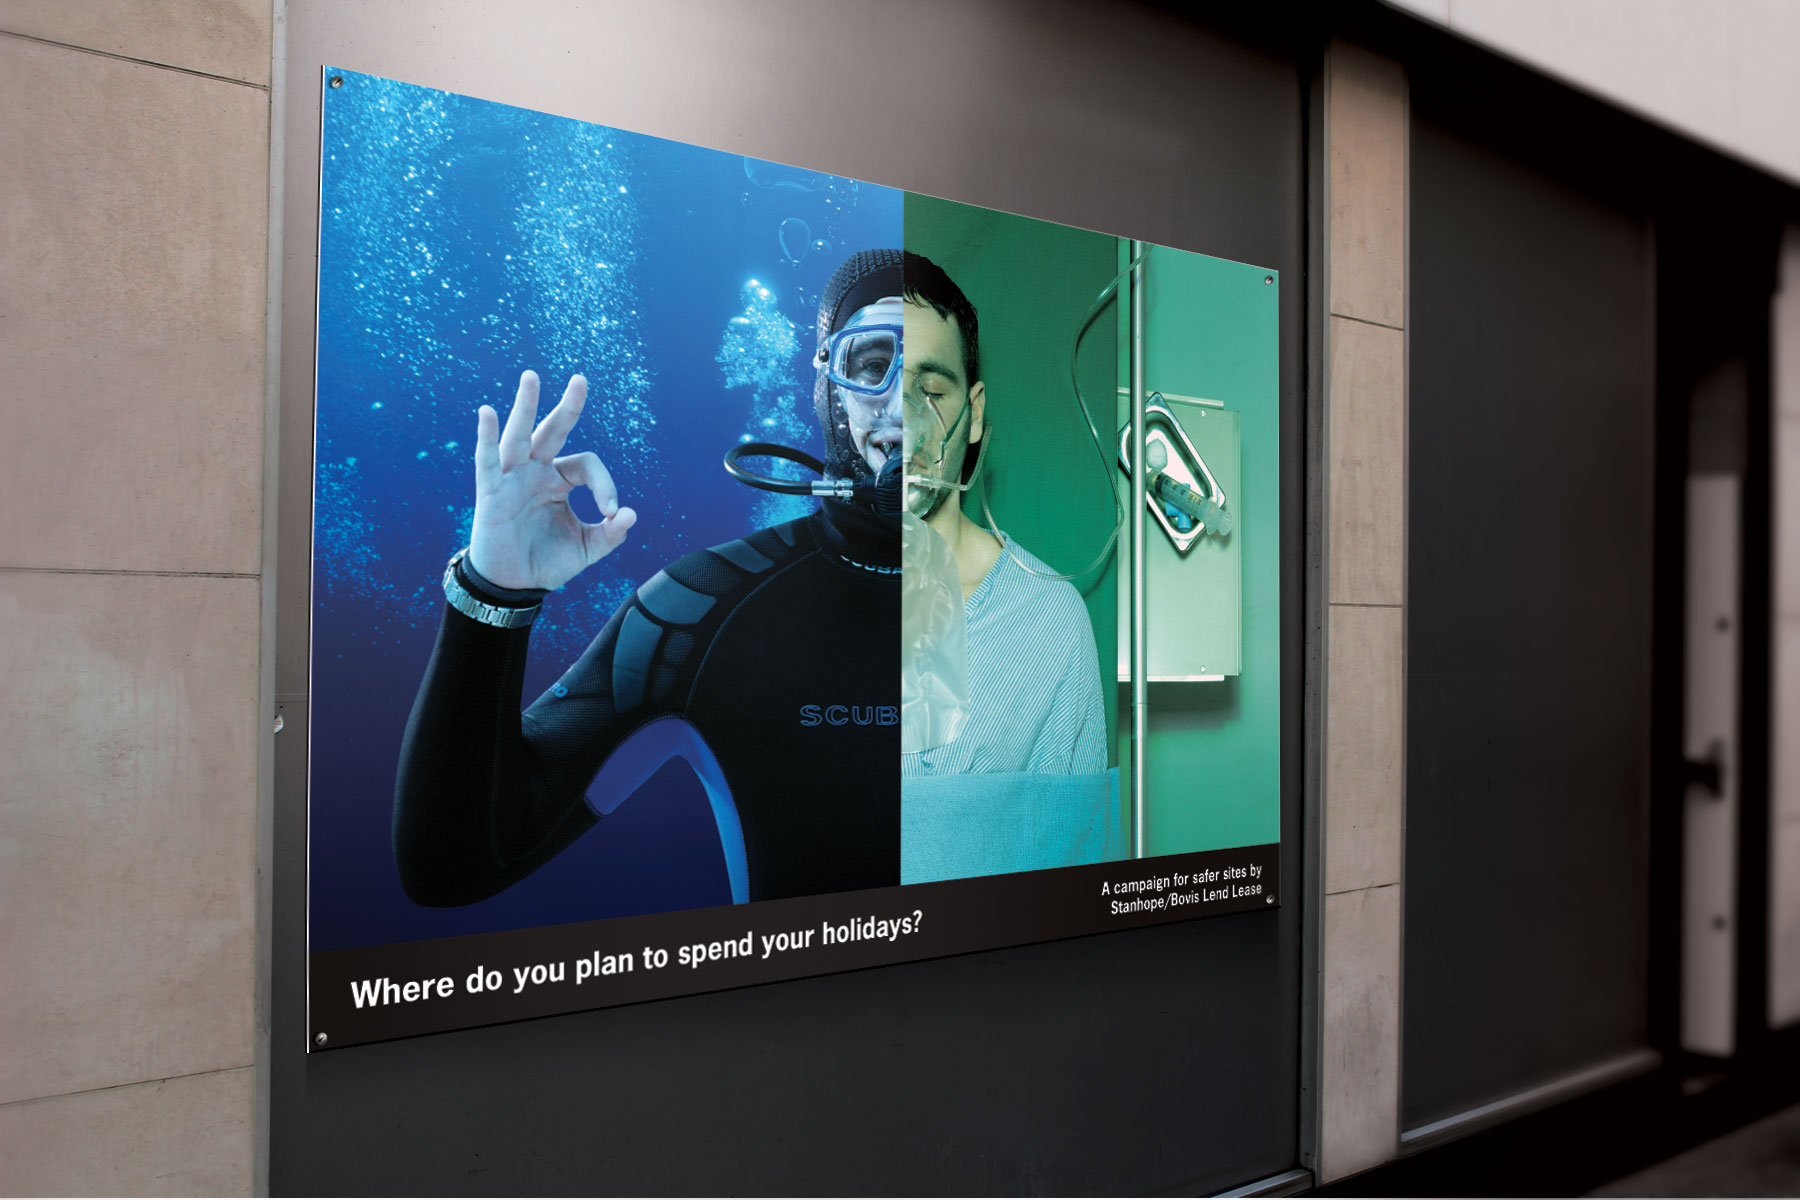 The advertising media was applied to a myriad of applications, from small A2 format block mounted posters in canteens to much larger billboard format.